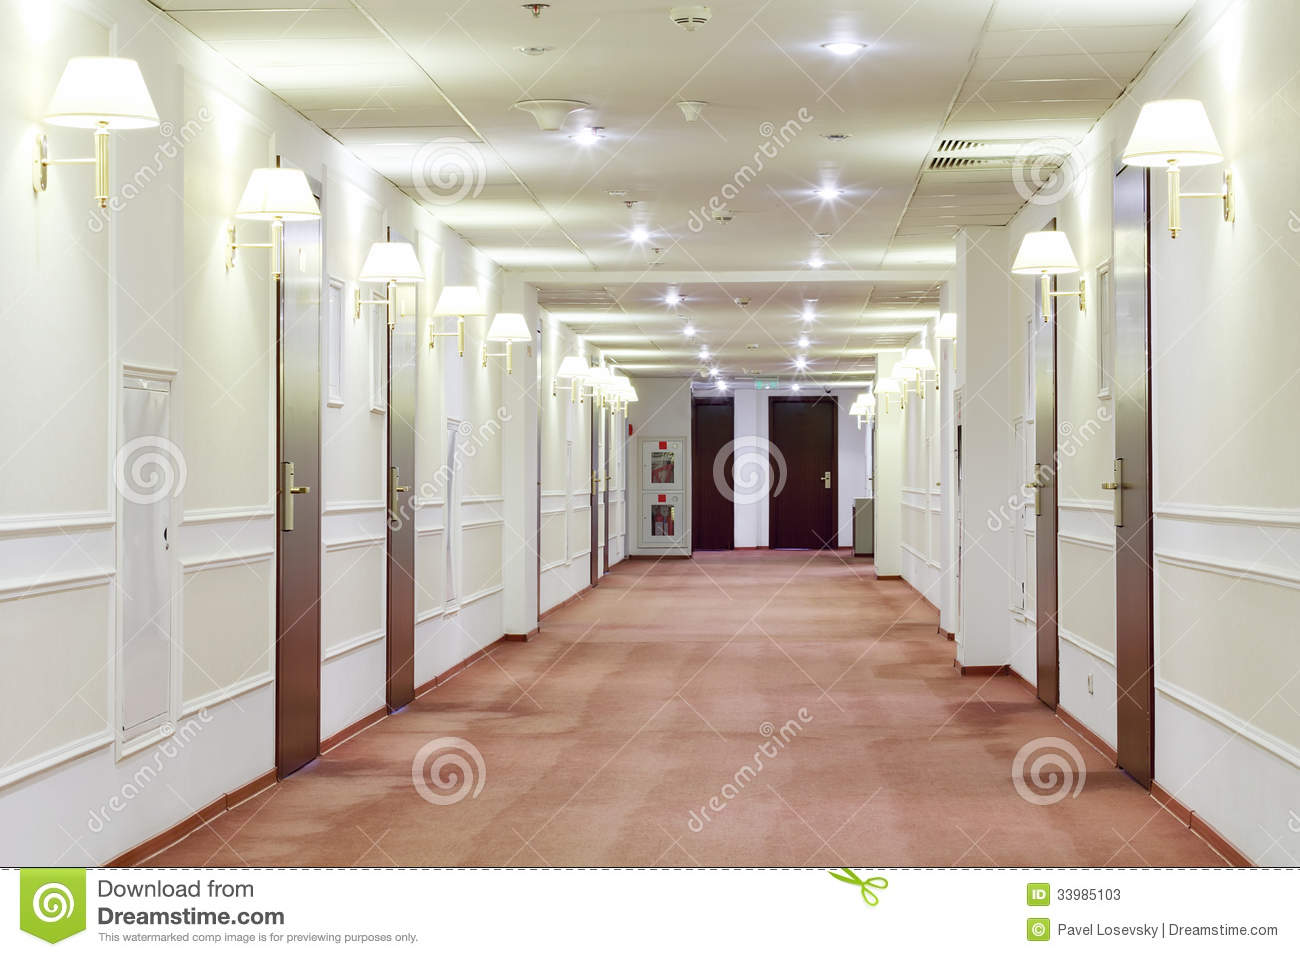 Stock Photos Hallway Many Doors Leading Hotel Rooms Spacious Light Image33985103 in addition 104A together with Stock Photos Energy Word Cloud Image15229433 also Royalty Free Stock Image Peacock Large Tail Image17467576 besides Royalty Free Stock Photography Successful Male Architect Building Site Arms Crossed Image32947547. on large 3d house plans